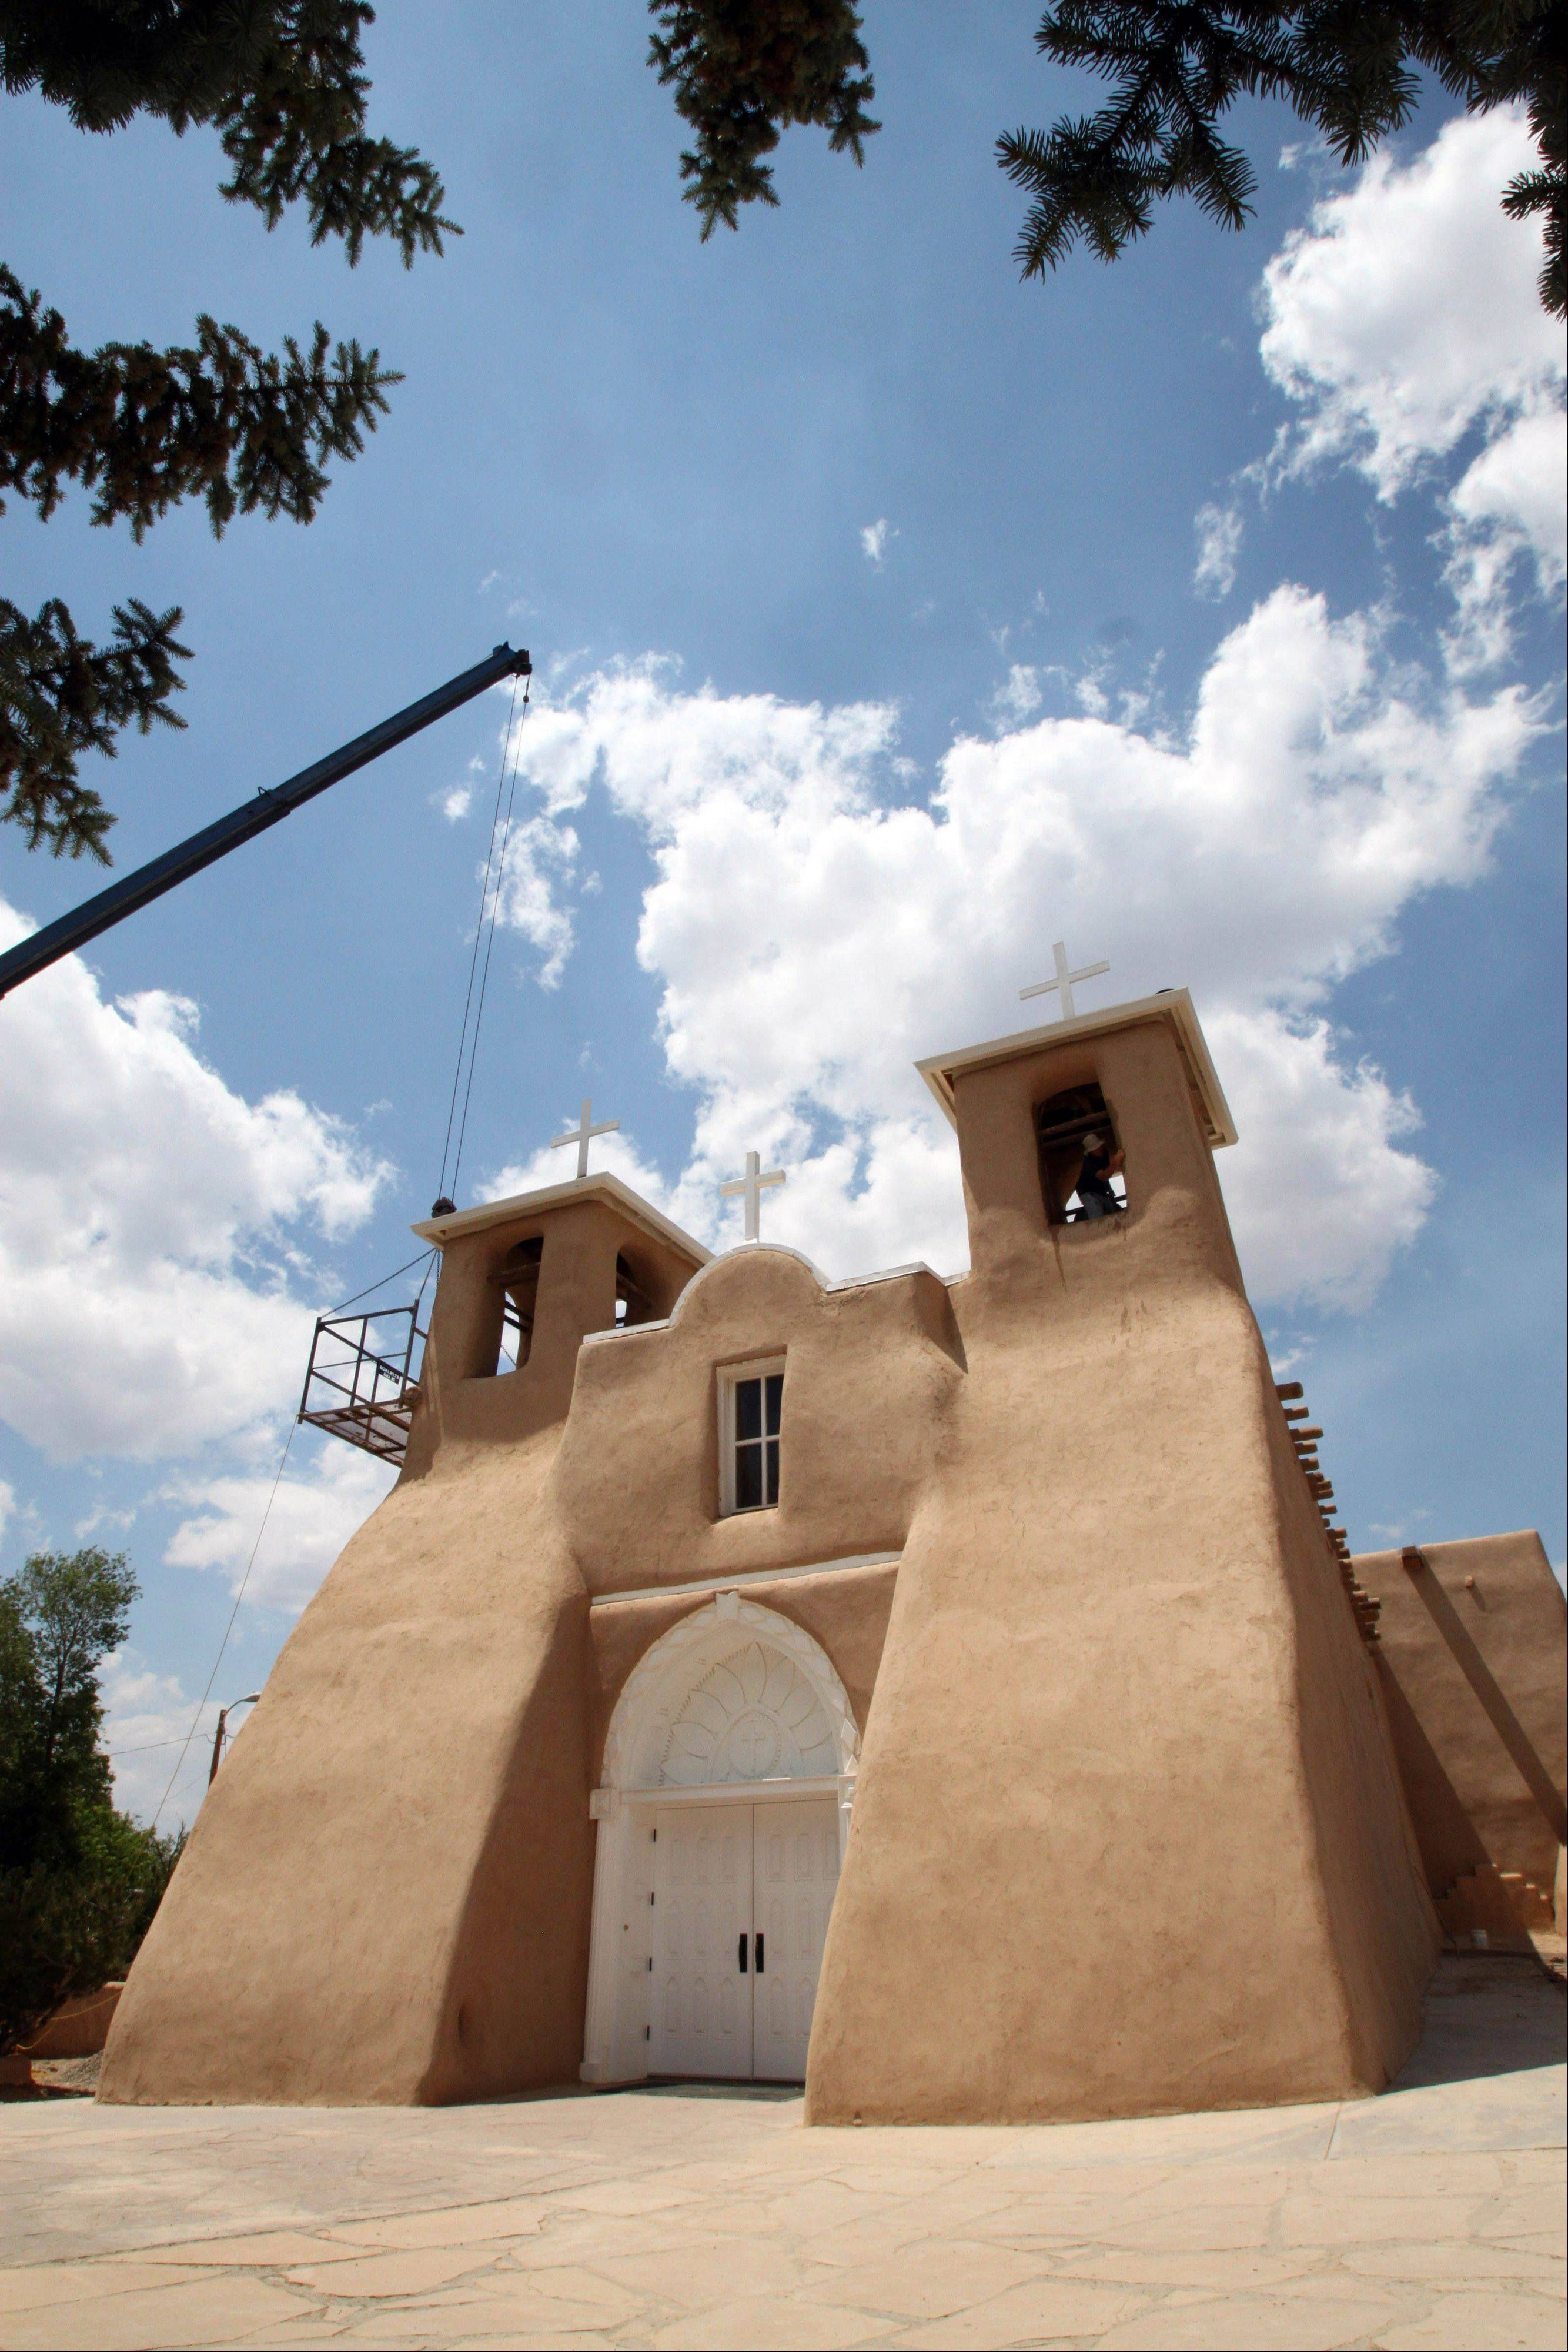 Workers apply mud to the San Francisco de Asis Church in Ranchos de Taos, N.M., as part of an annual ritual that has been done for nearly 200 years. The historic church was made famous by the paintings of Georgia O�Keeffe and the photographs of Ansel Adams and Paul Strand.